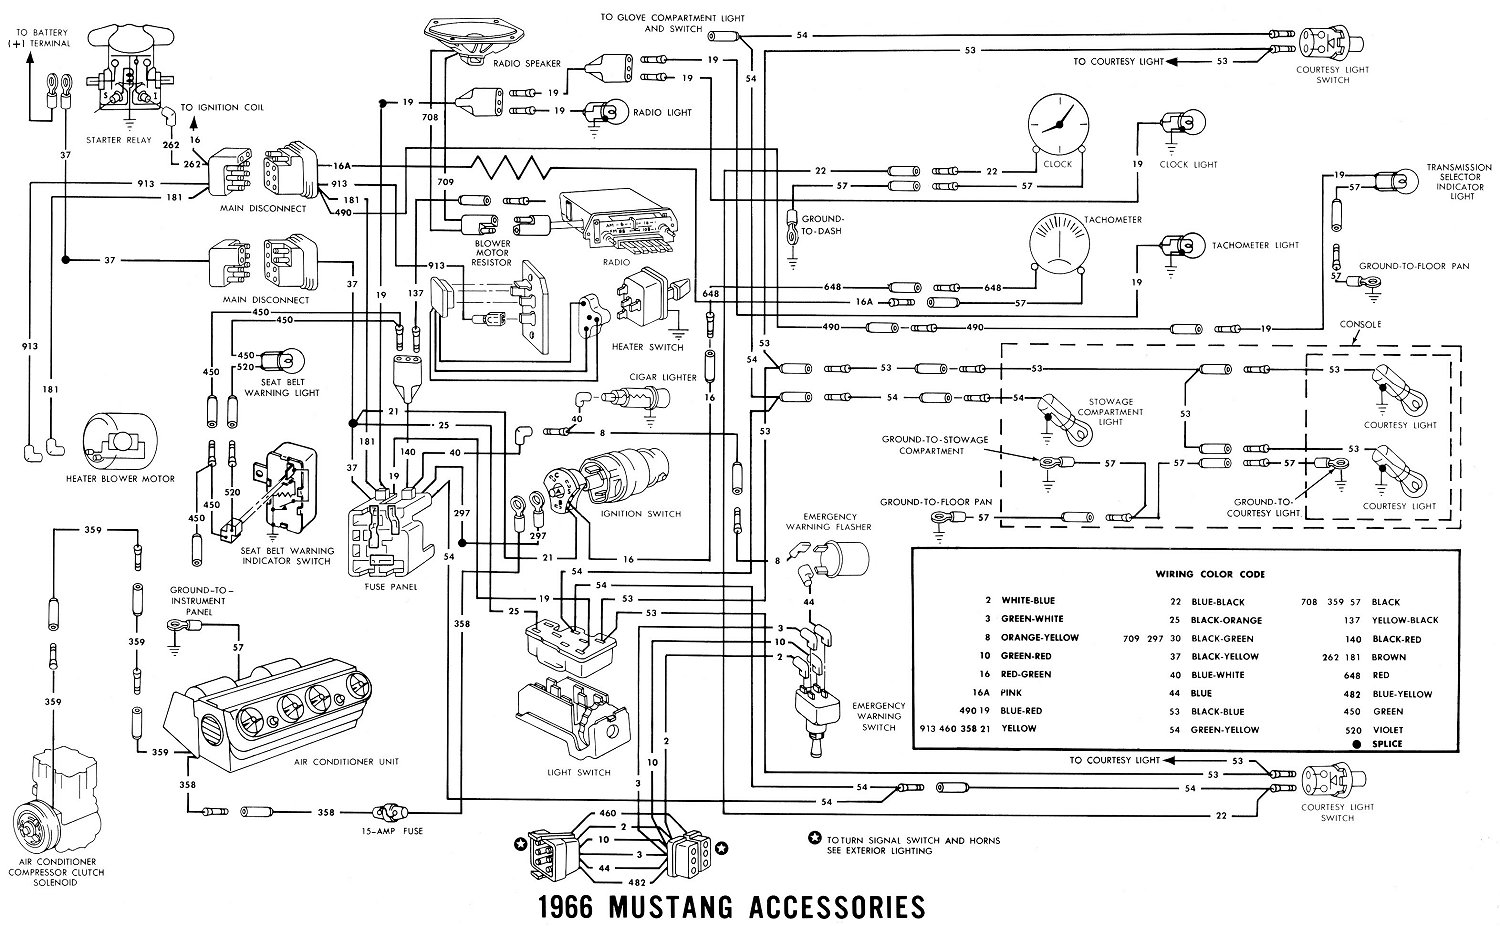 1966 Ford Mustang Accessories Wiring Diagram 1968 ford f100 wiring diagram 1965 ford f100 alternator wiring 1966 ford f100 wiring harness at edmiracle.co